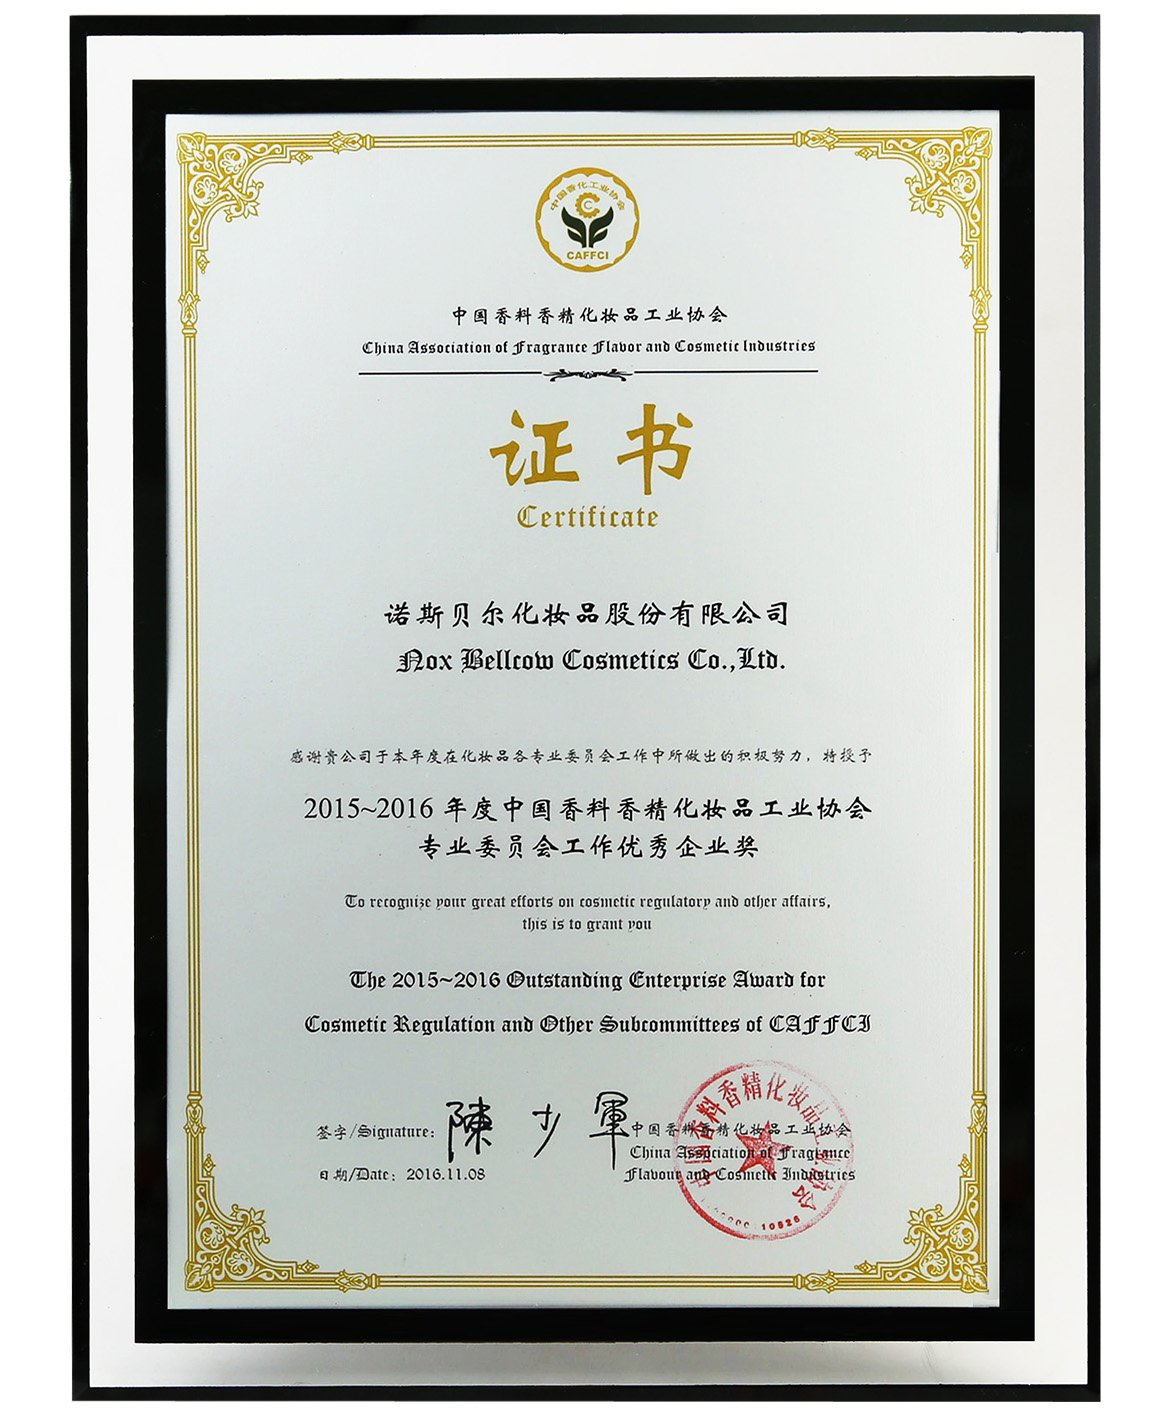 China Association of Fragrance Flavor and Cosmetic Industry Professional Committee Outstanding Enterprise Award 2015-2016